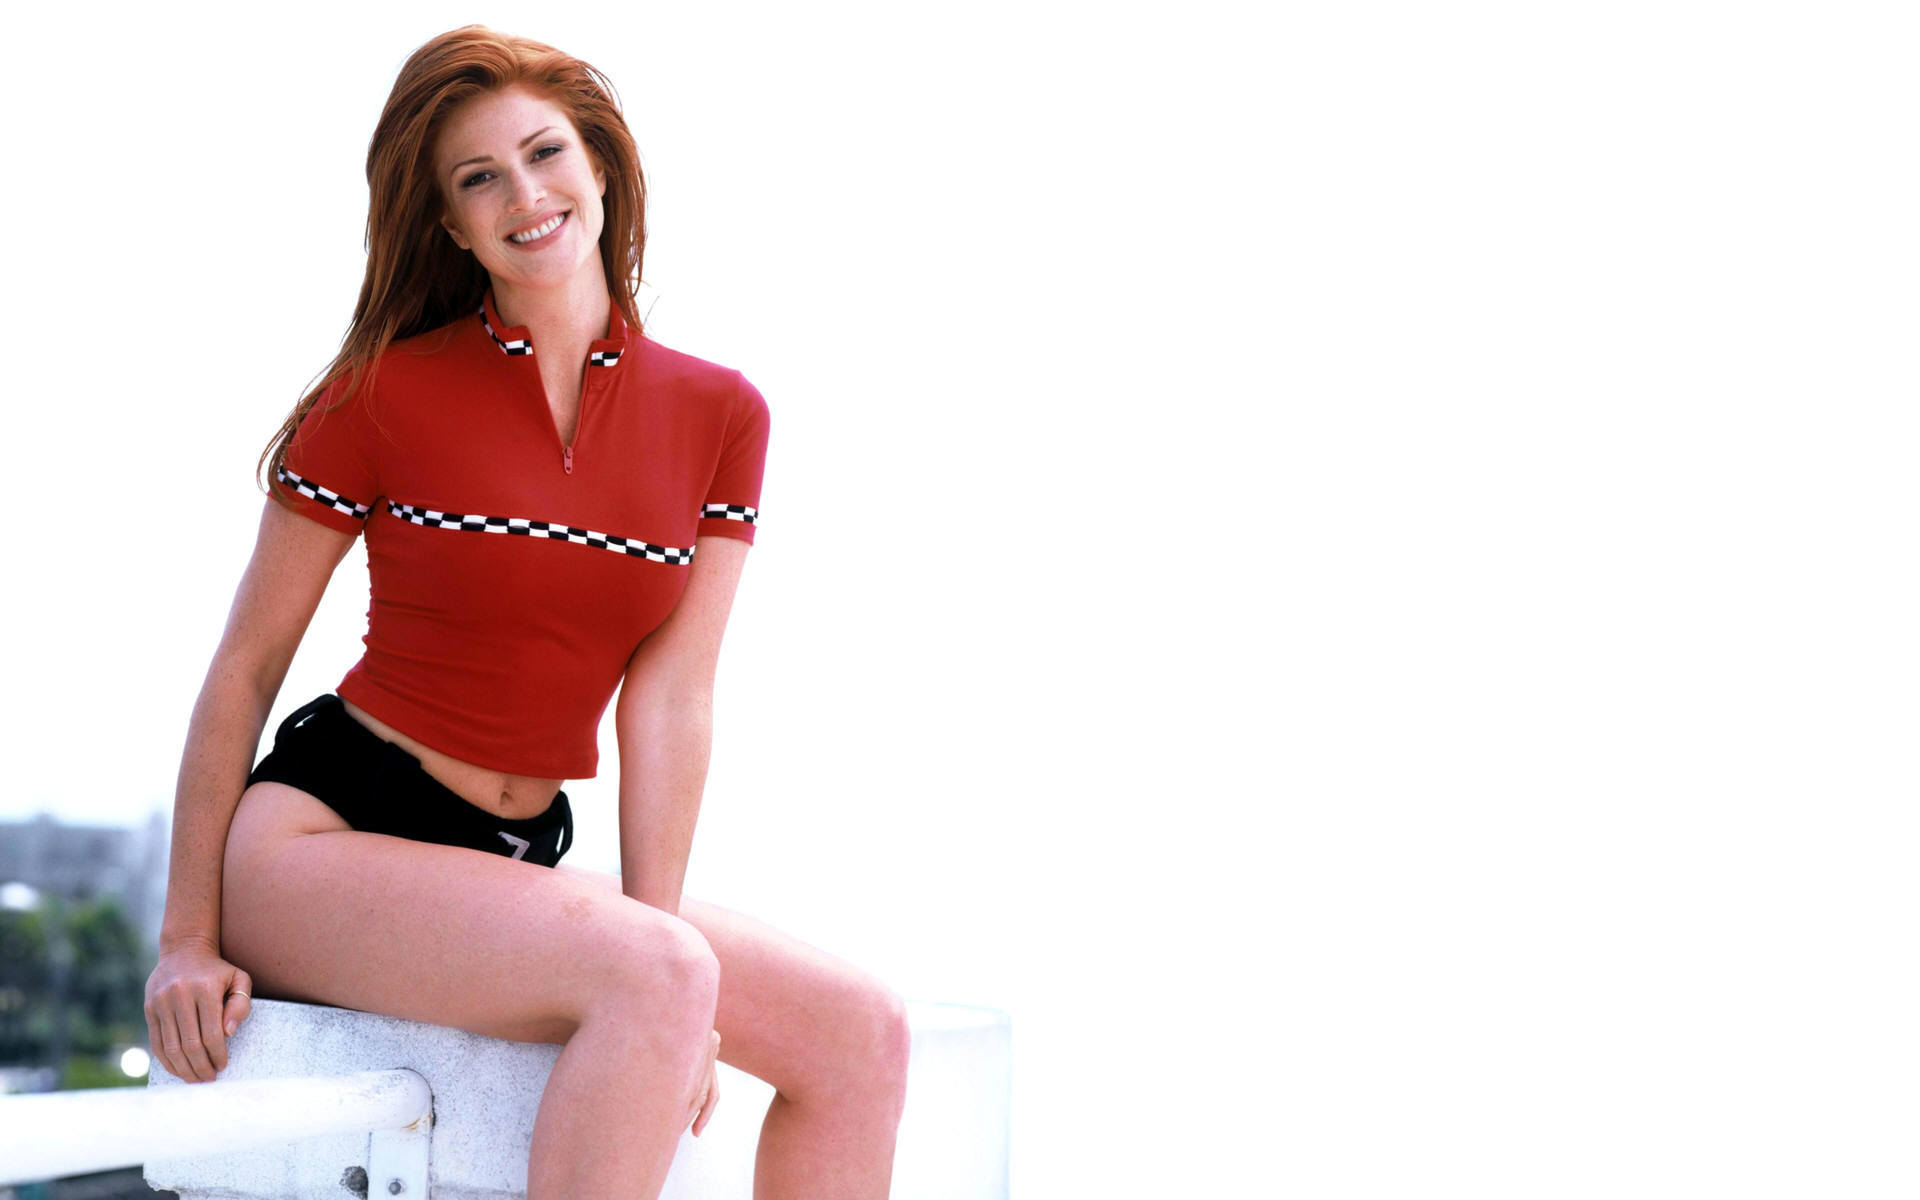 Angie Everhart High Quality Wallpapers